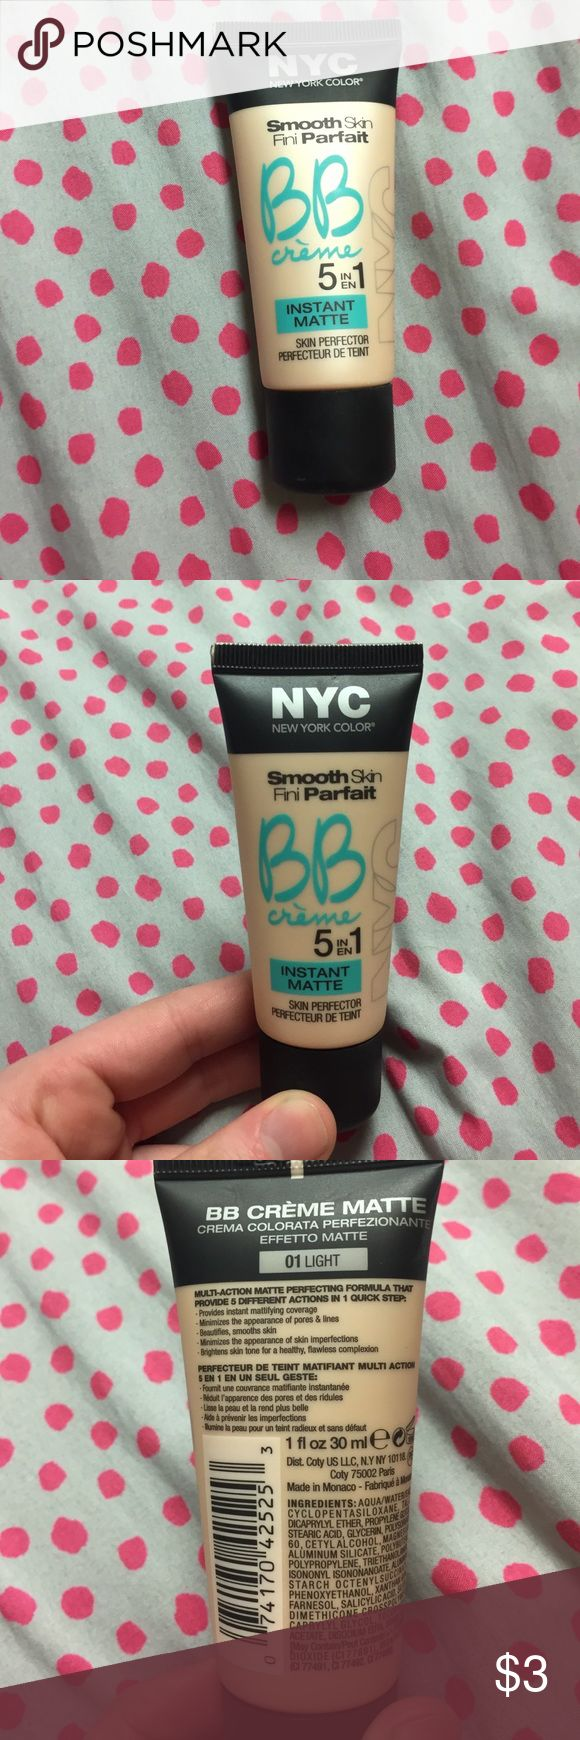 NYC Smooth Skin BB Creme instant matte Barely used BB creme in the shade 01 Light. Provides instant mattifying coverage. NO TRADING! New York Color Makeup Foundation